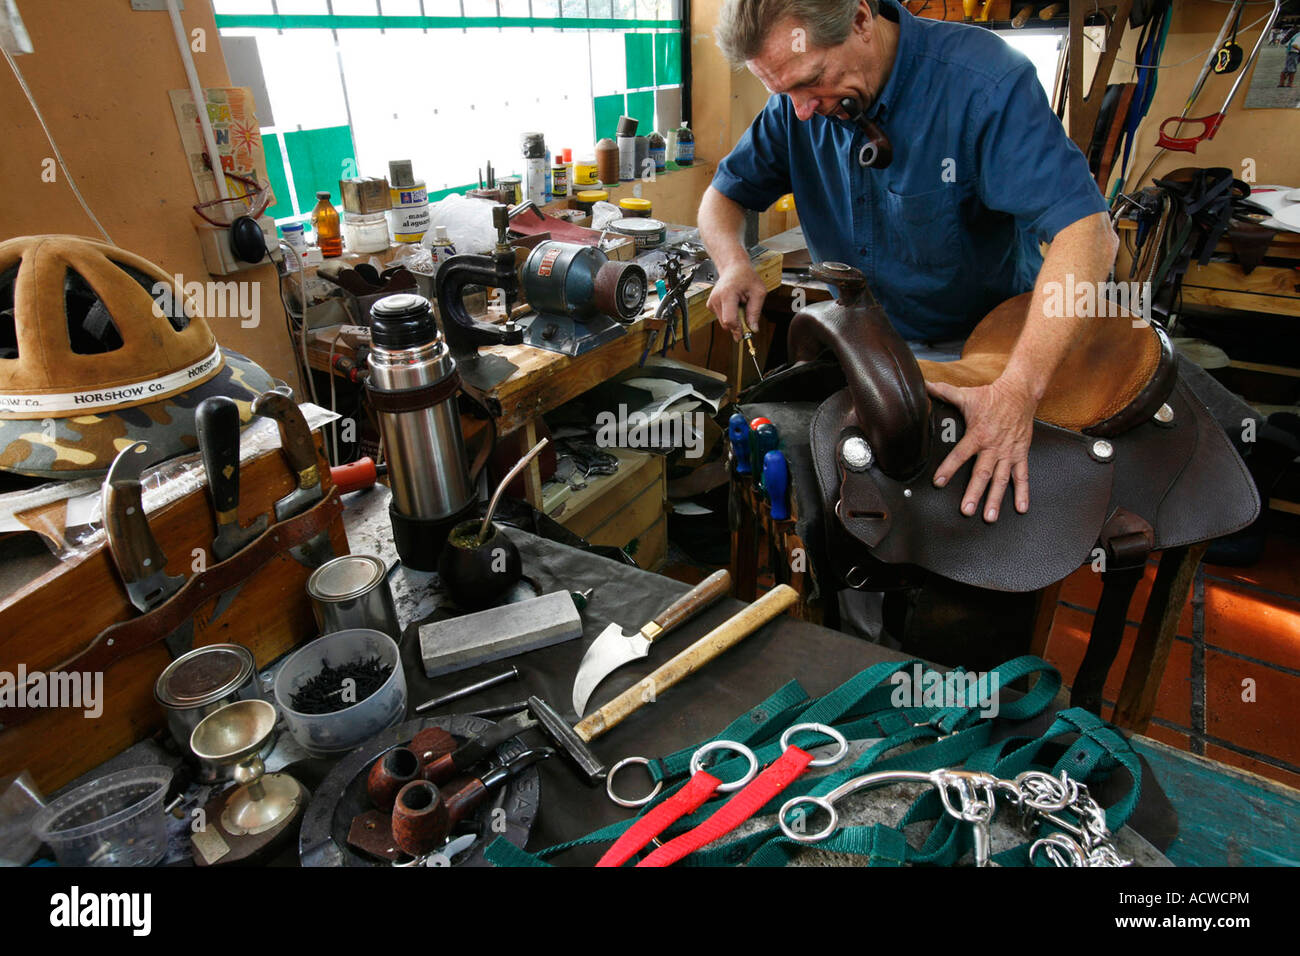 A horse mount workshop with tools of the trade in Buenos Aires Argentina - Stock Image